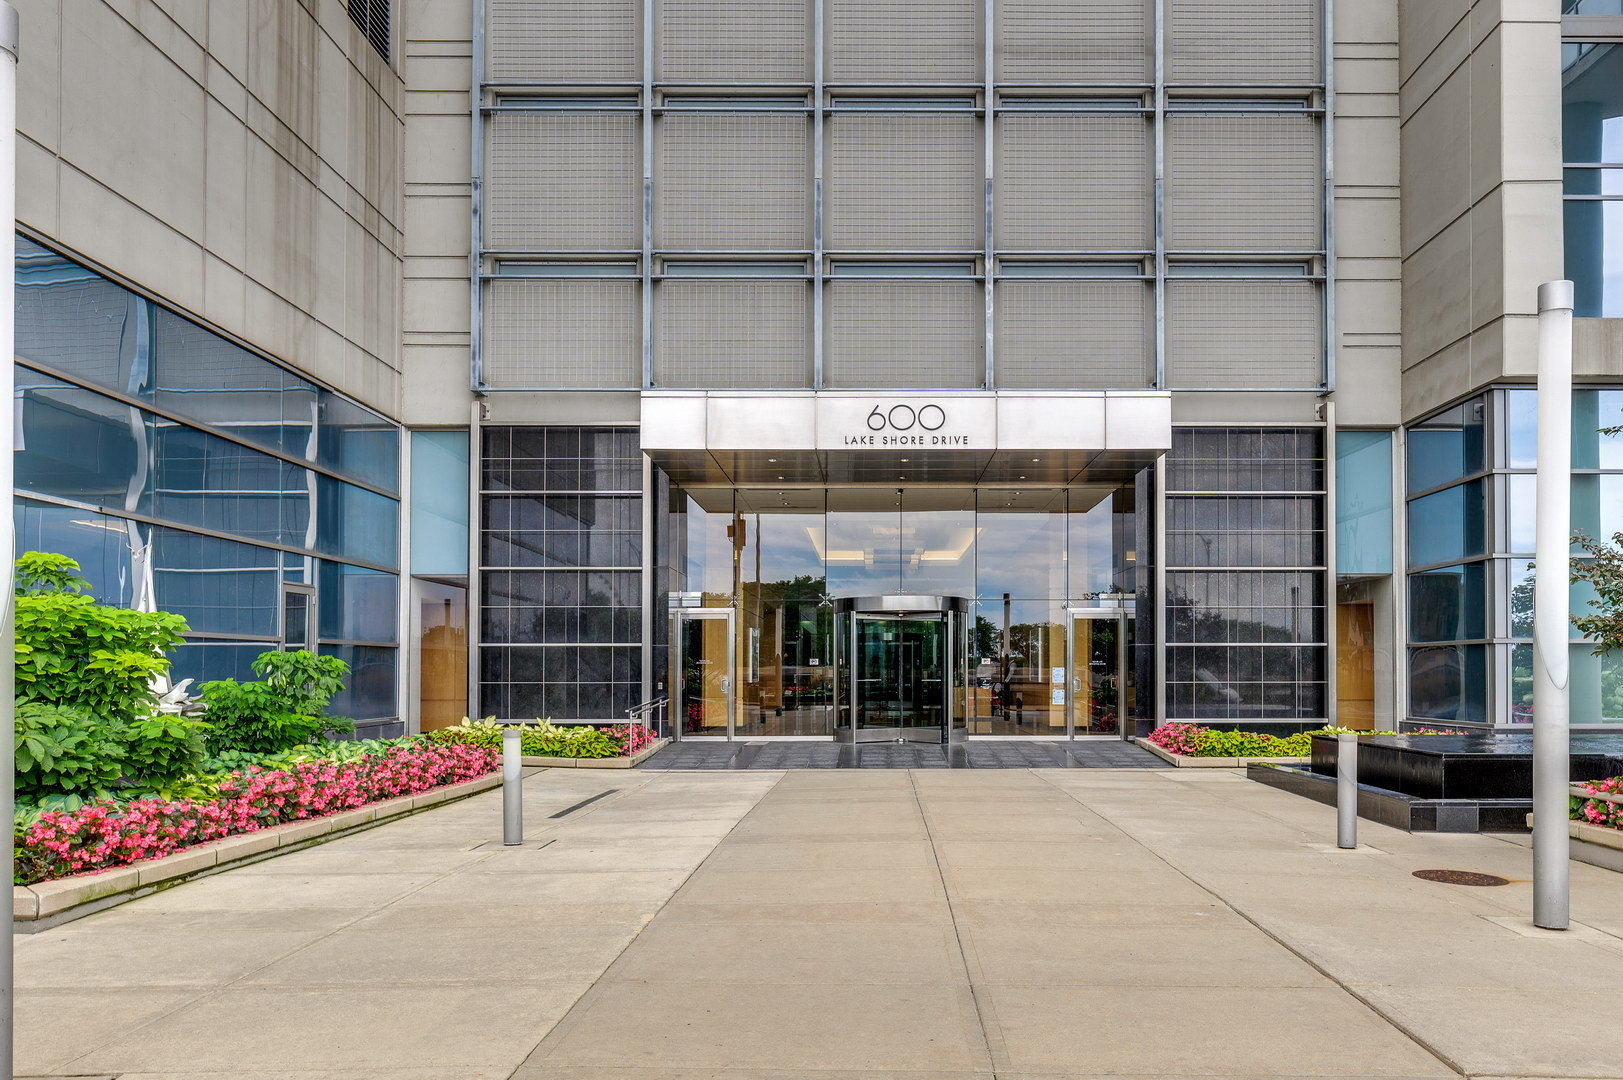 600 N LAKE SHORE Drive 3201, CHICAGO, Illinois 60611